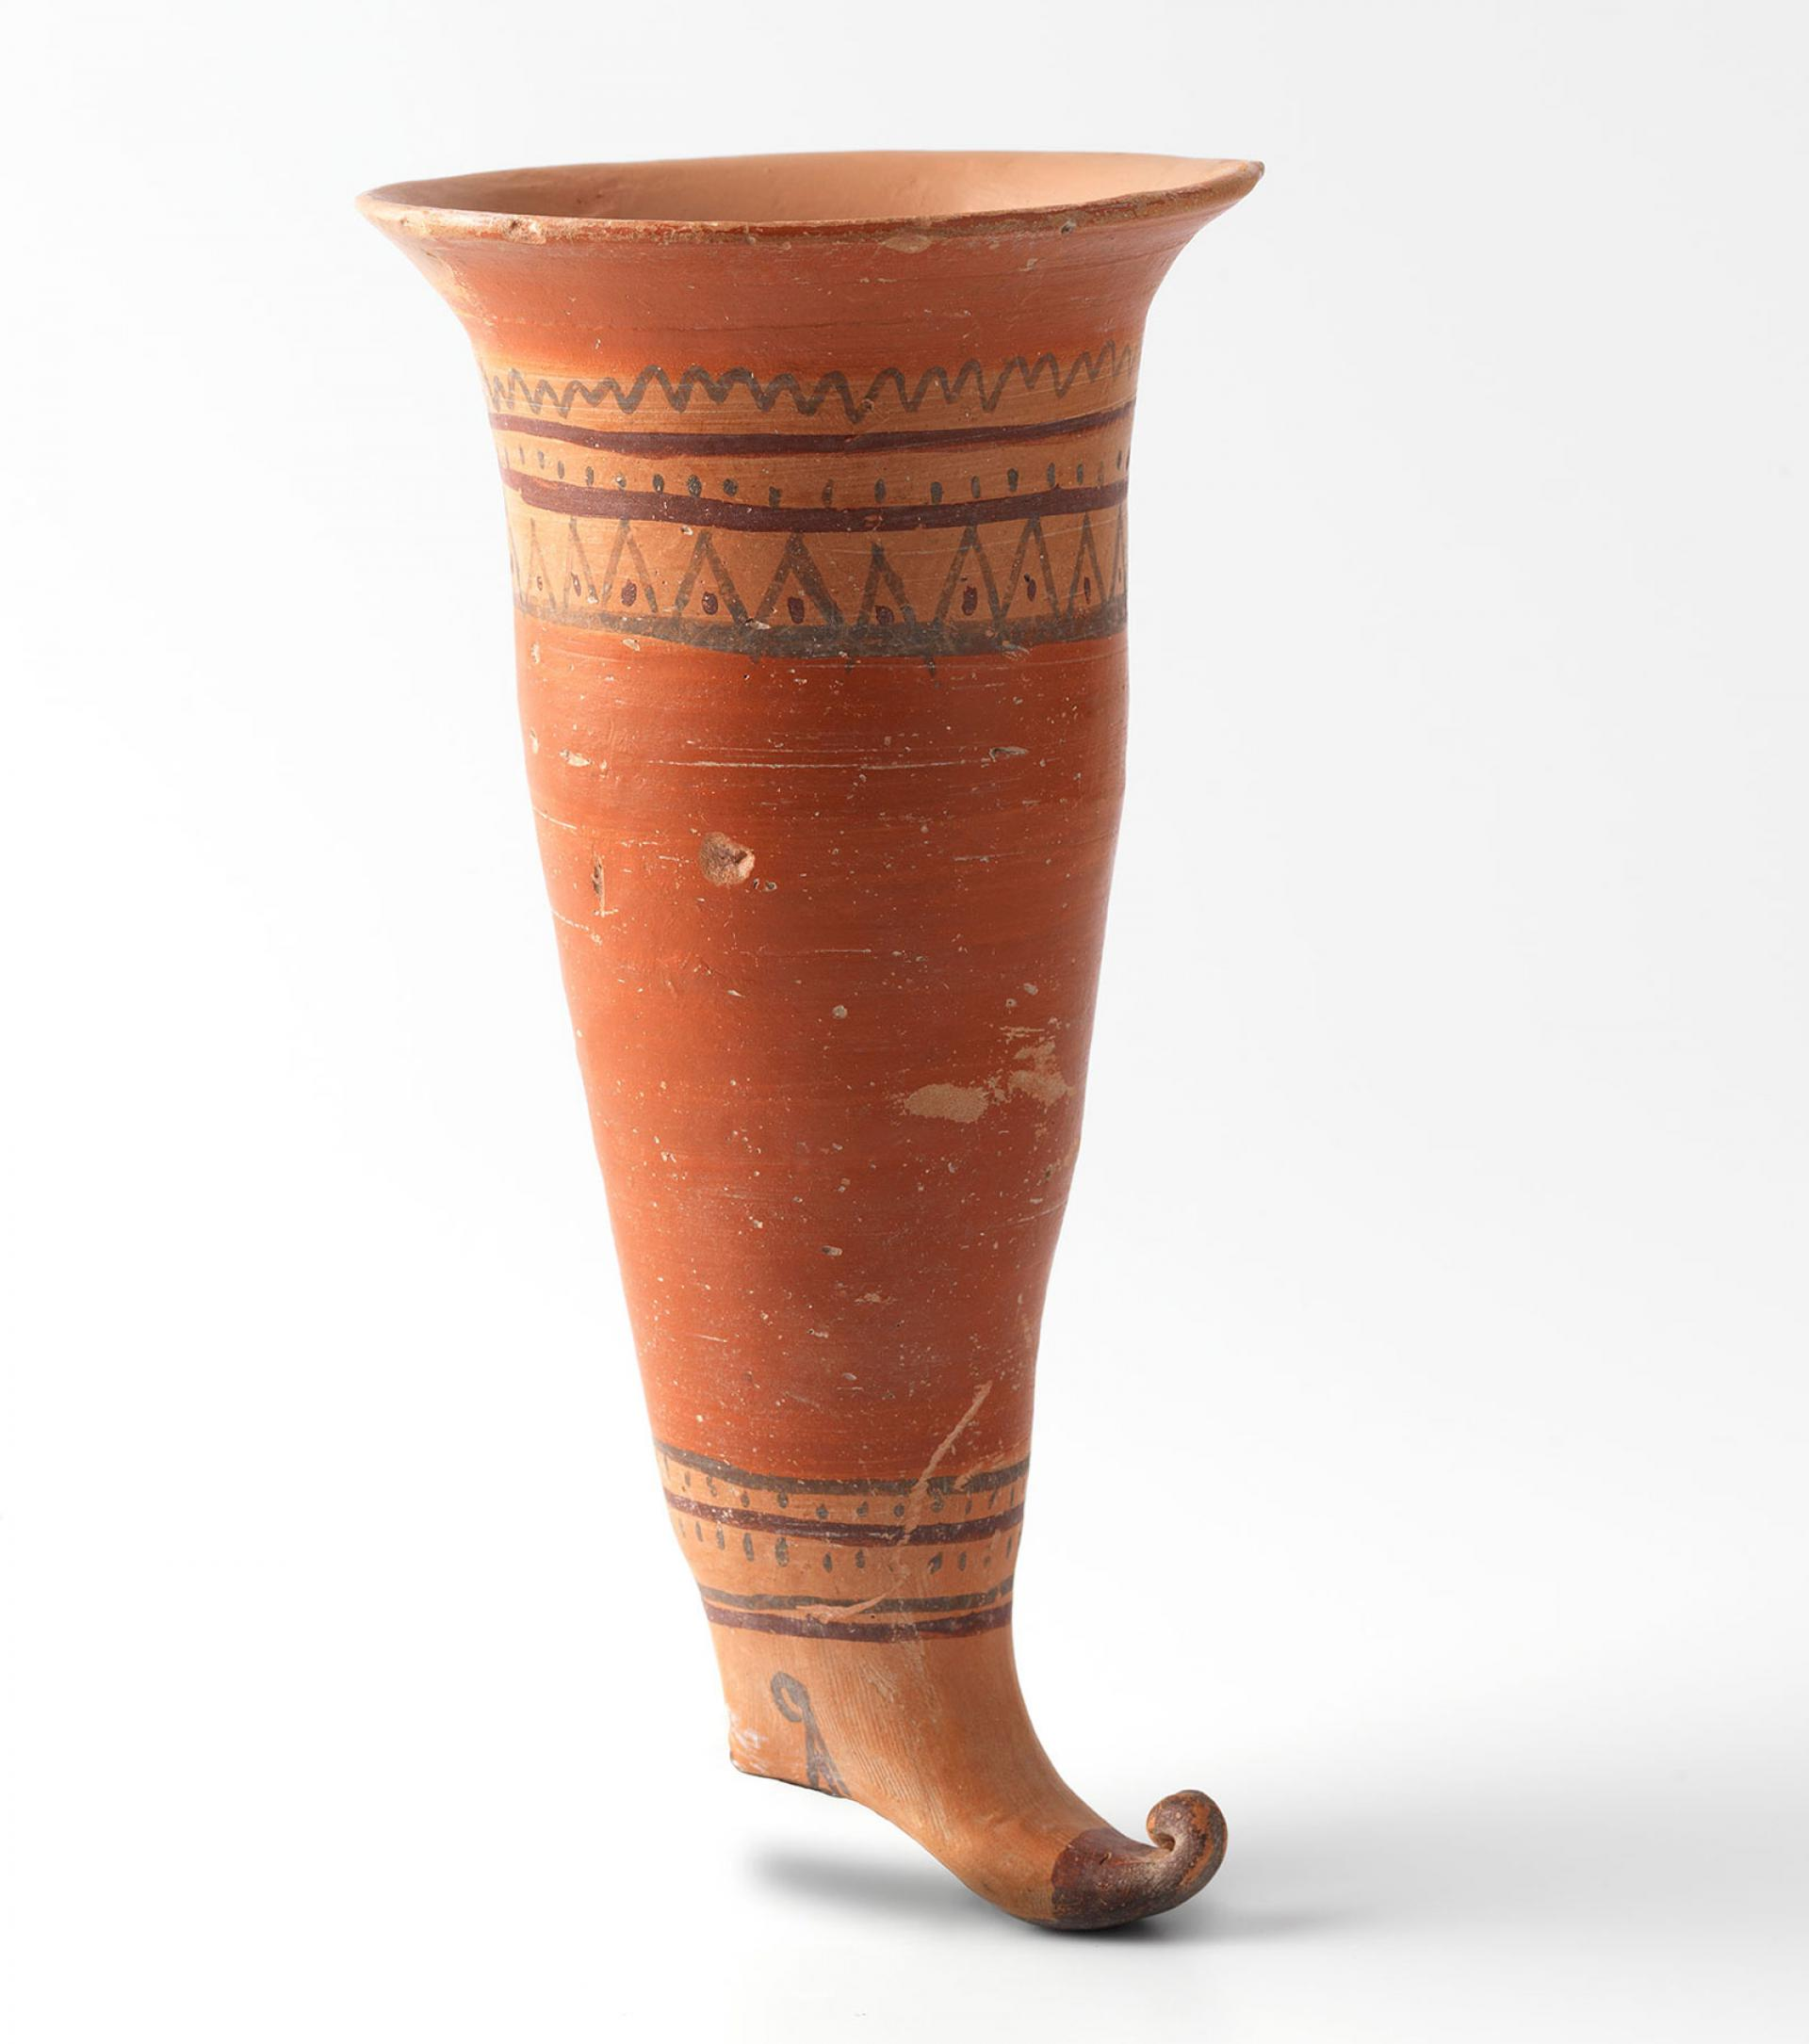 SHM 6455 - Boot shaped rhyton Terracotta Late Iron Age, Lydian 6th century BC Inland Western Anatolia